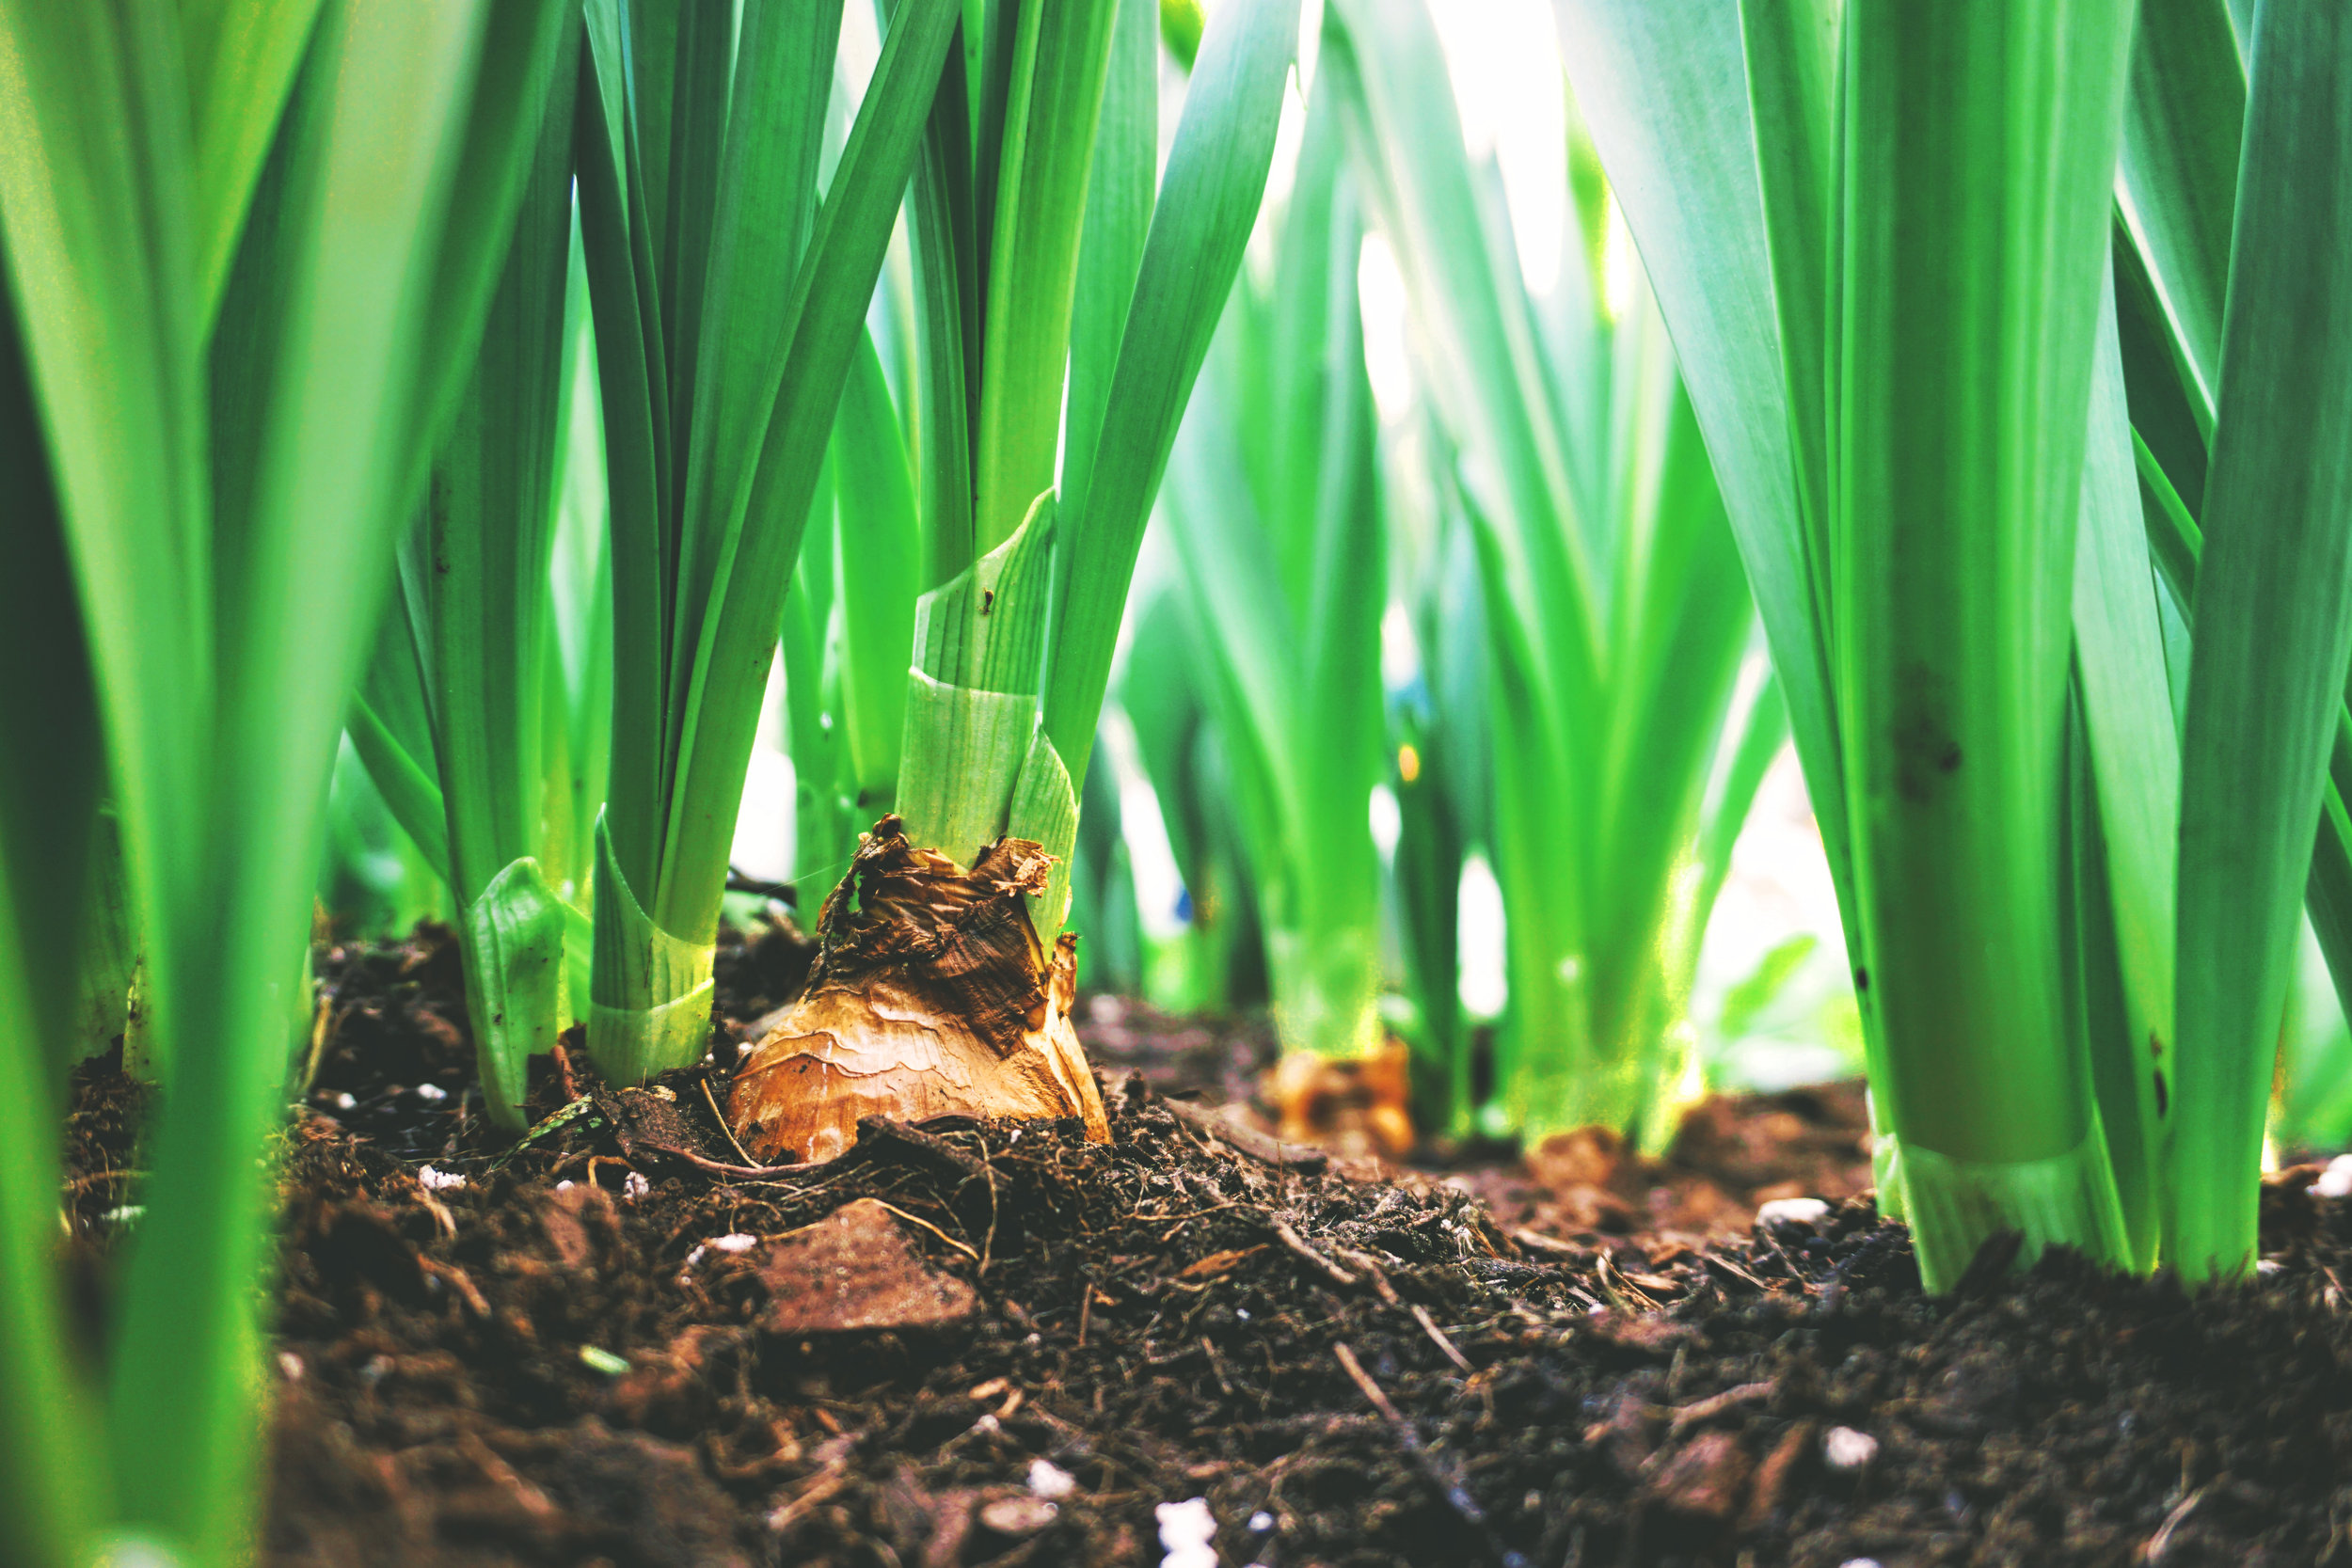 Planting Bulbs - What to plant for Summer Blooms